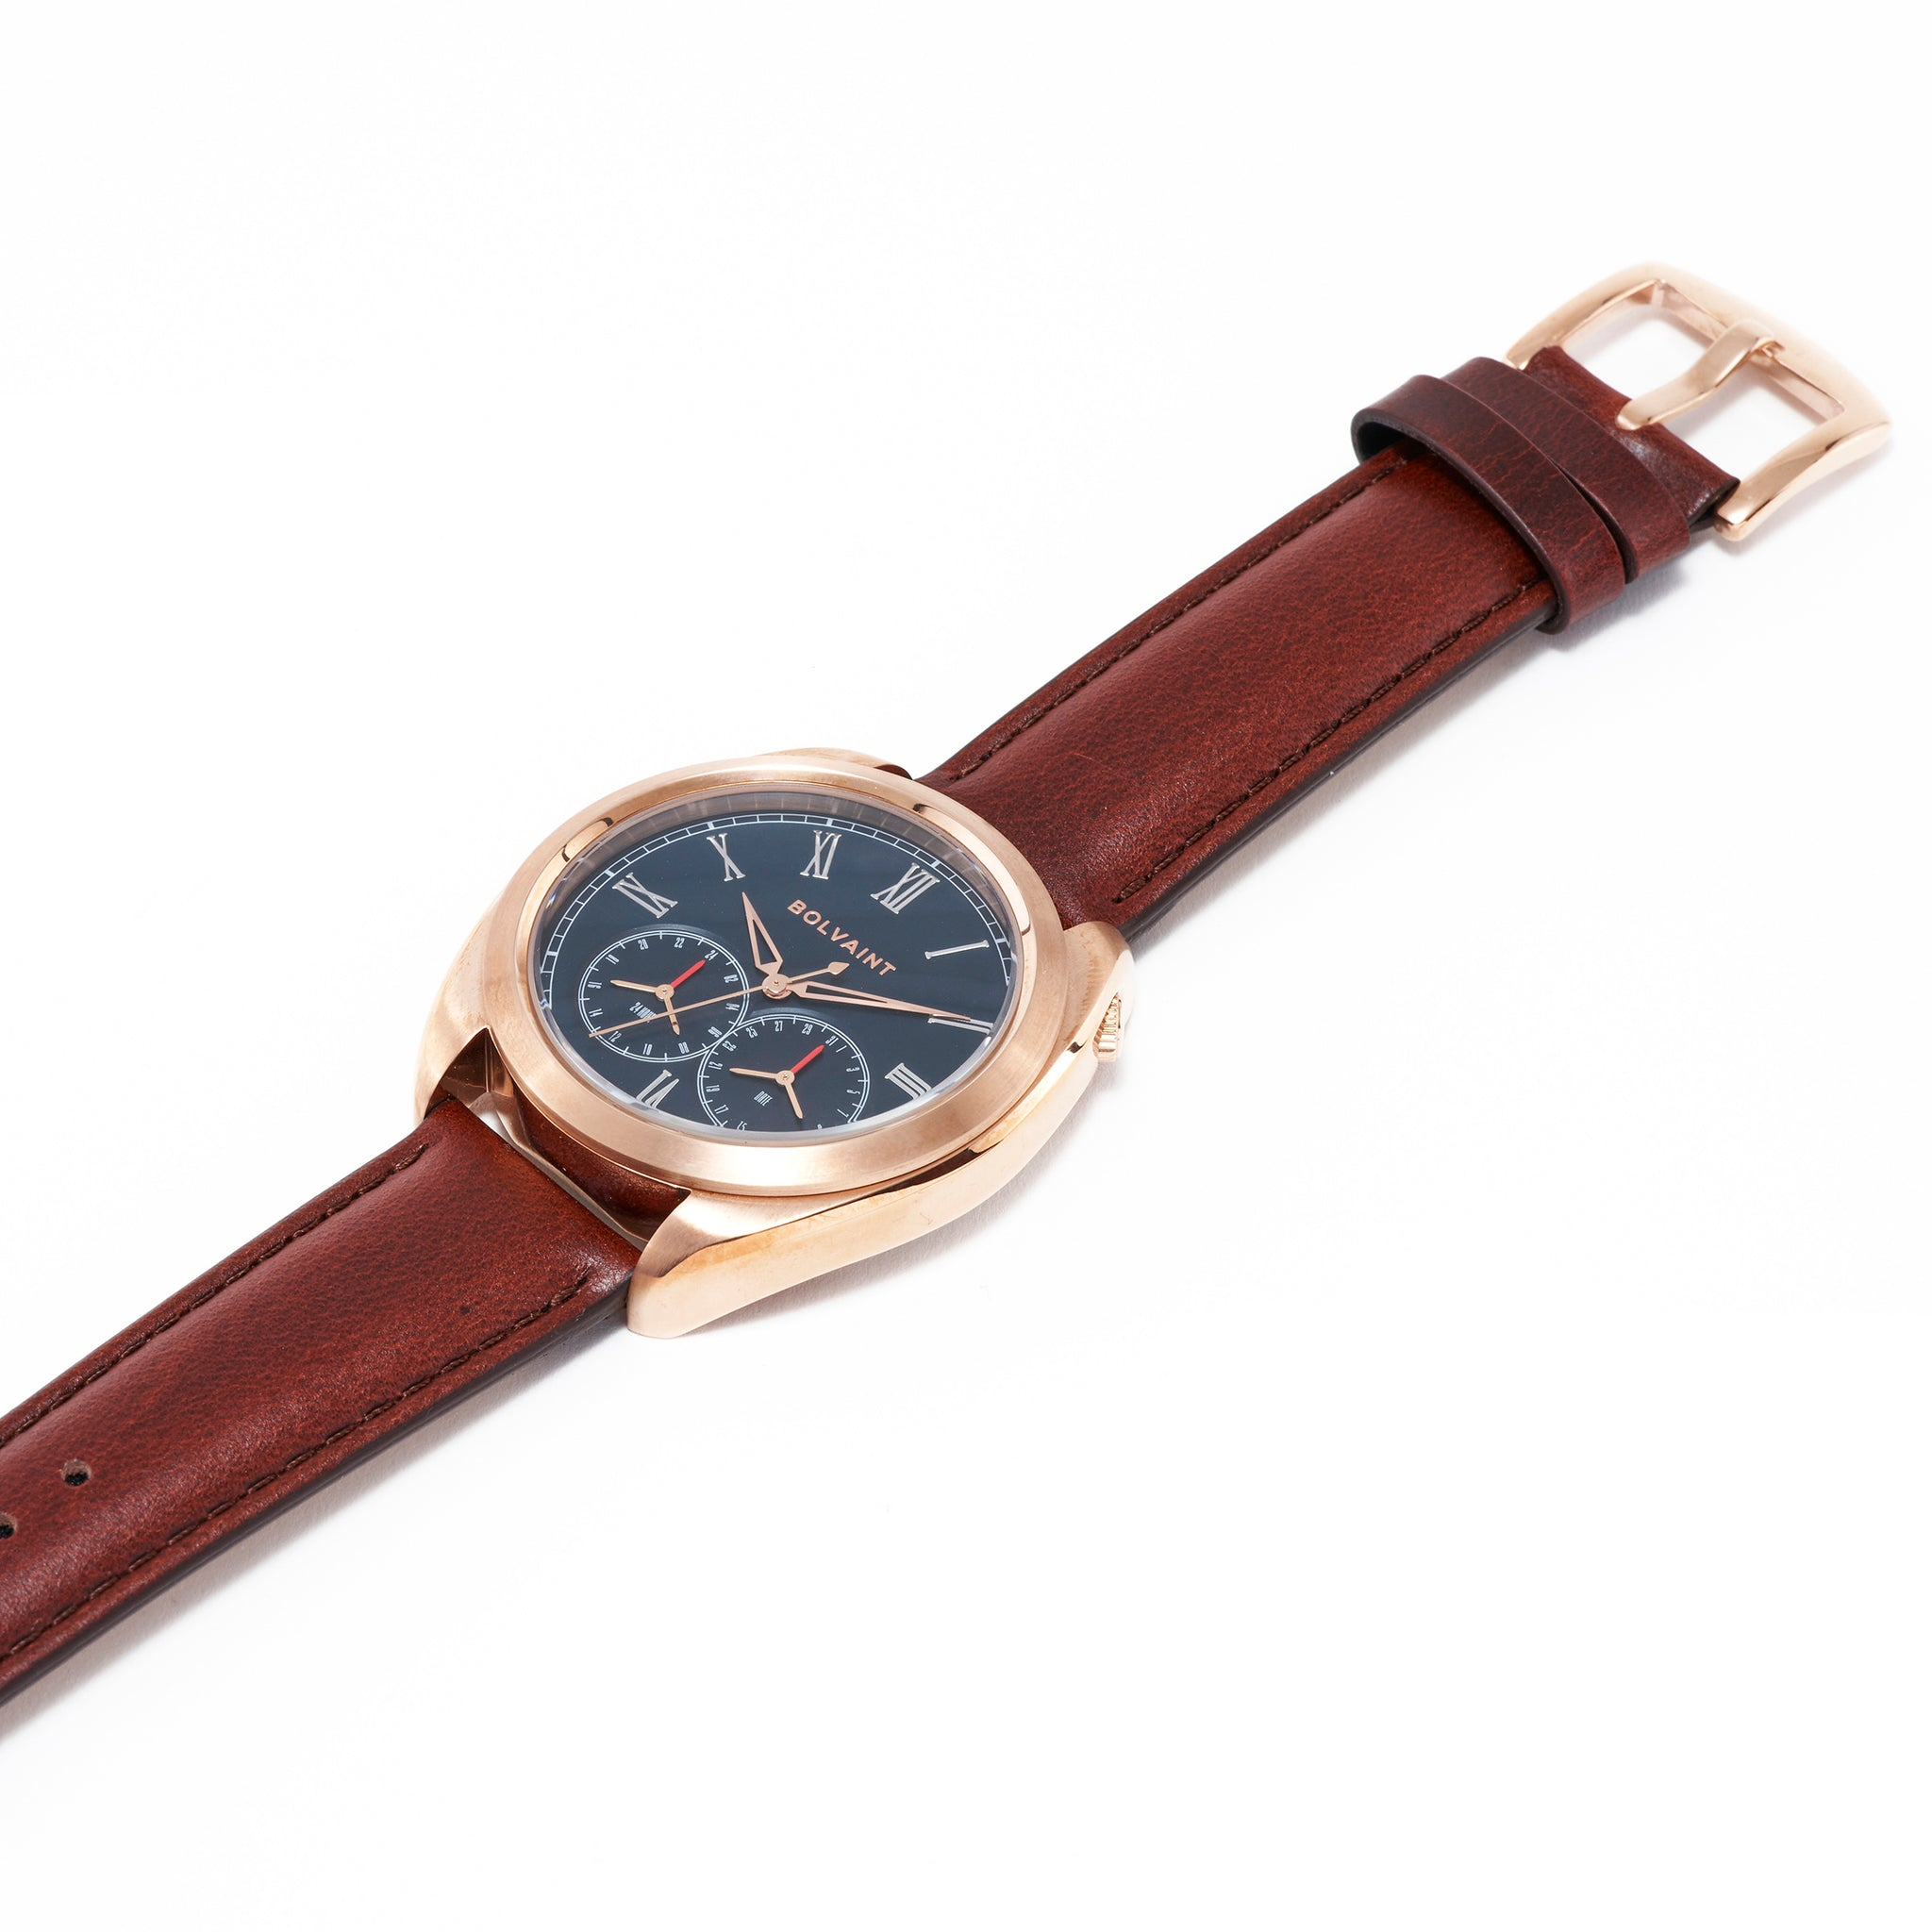 The Bolvaint Aurelius Bleu in Rose Gold